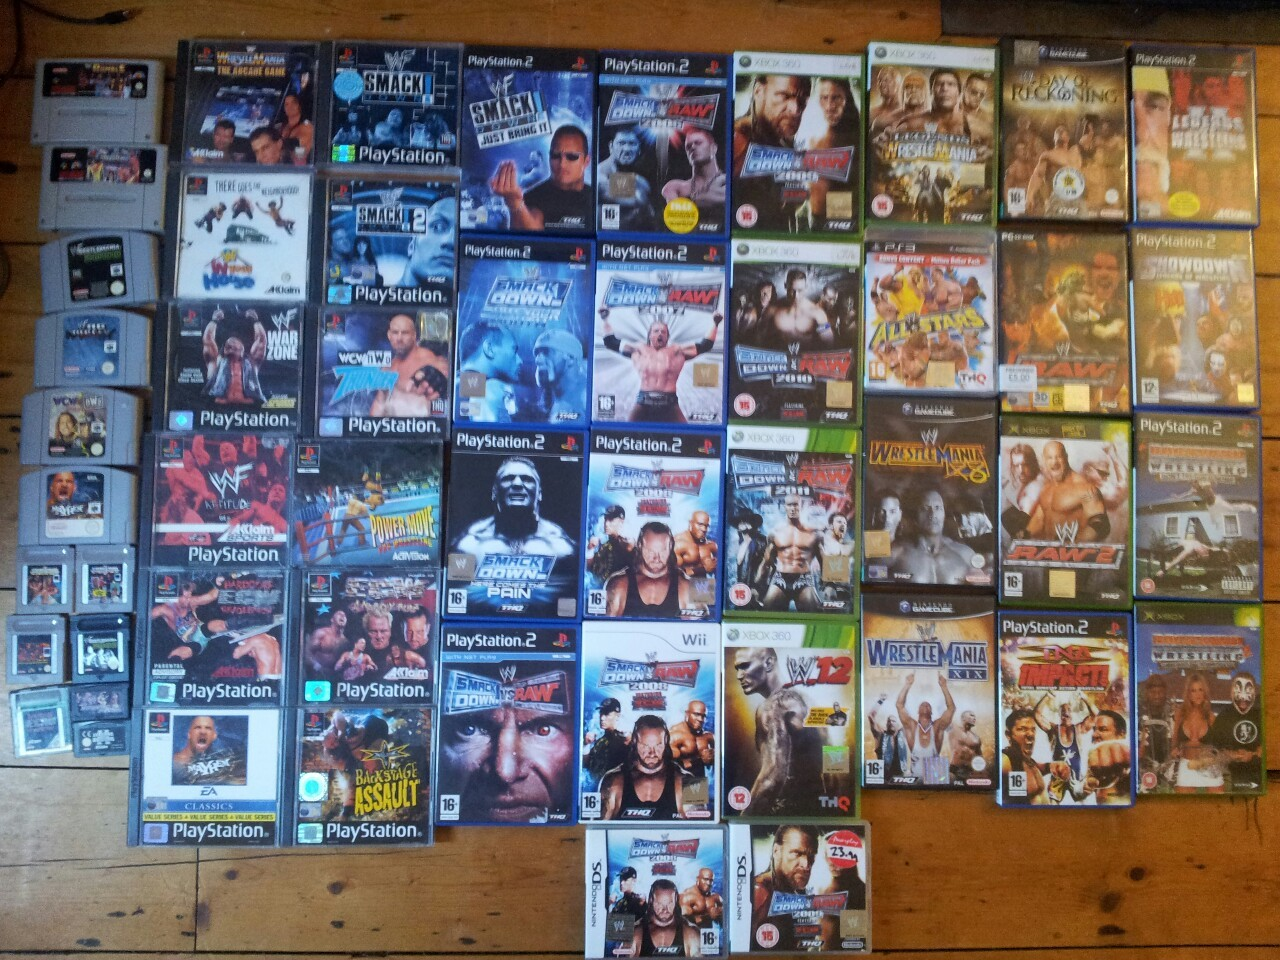 You could say i like pro wrestling video games